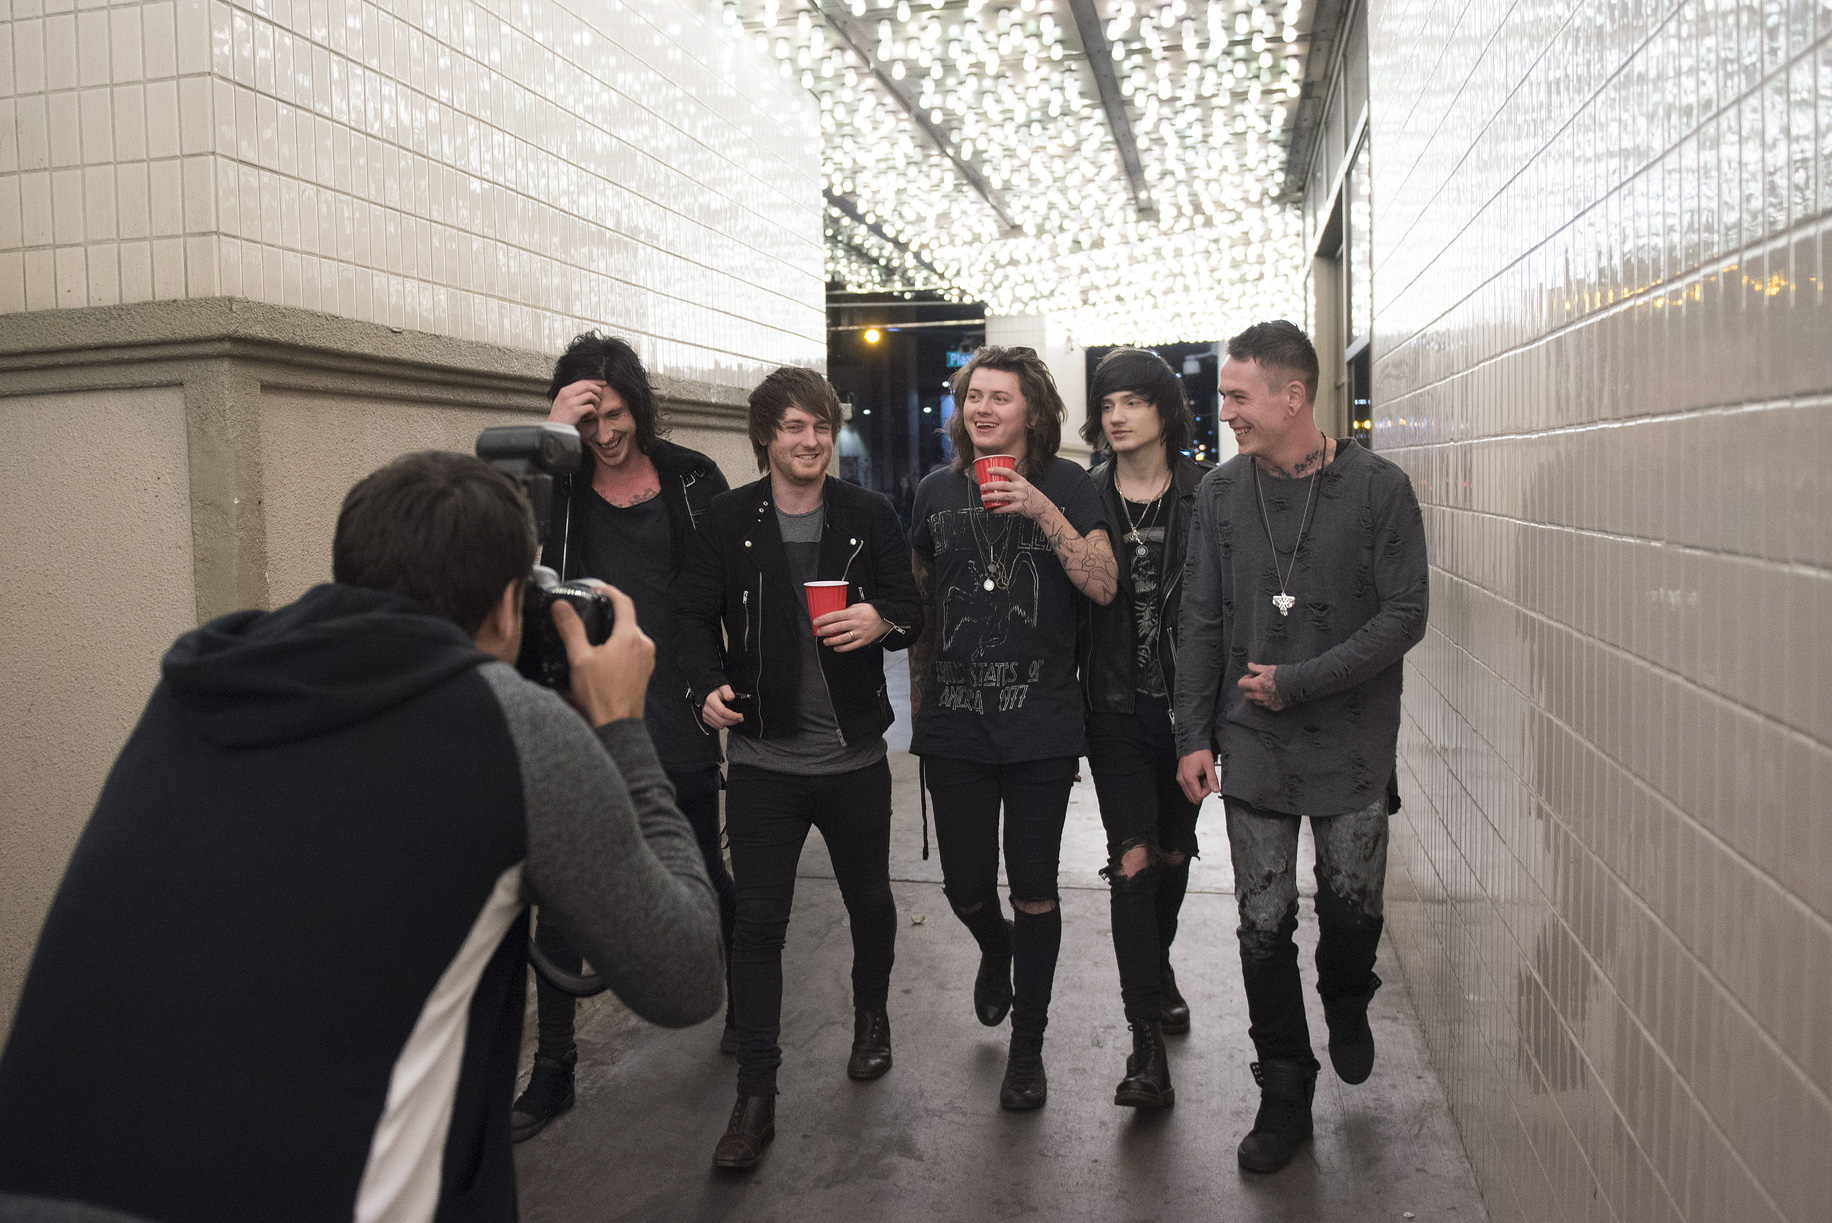 Andrew Lipovsky, left, photographs Asking Alexandria for a Kerrang! magazine photoshoot at the Plaza Hotel and Casino in Las Vegas Sunday, Feb. 7, 2016.